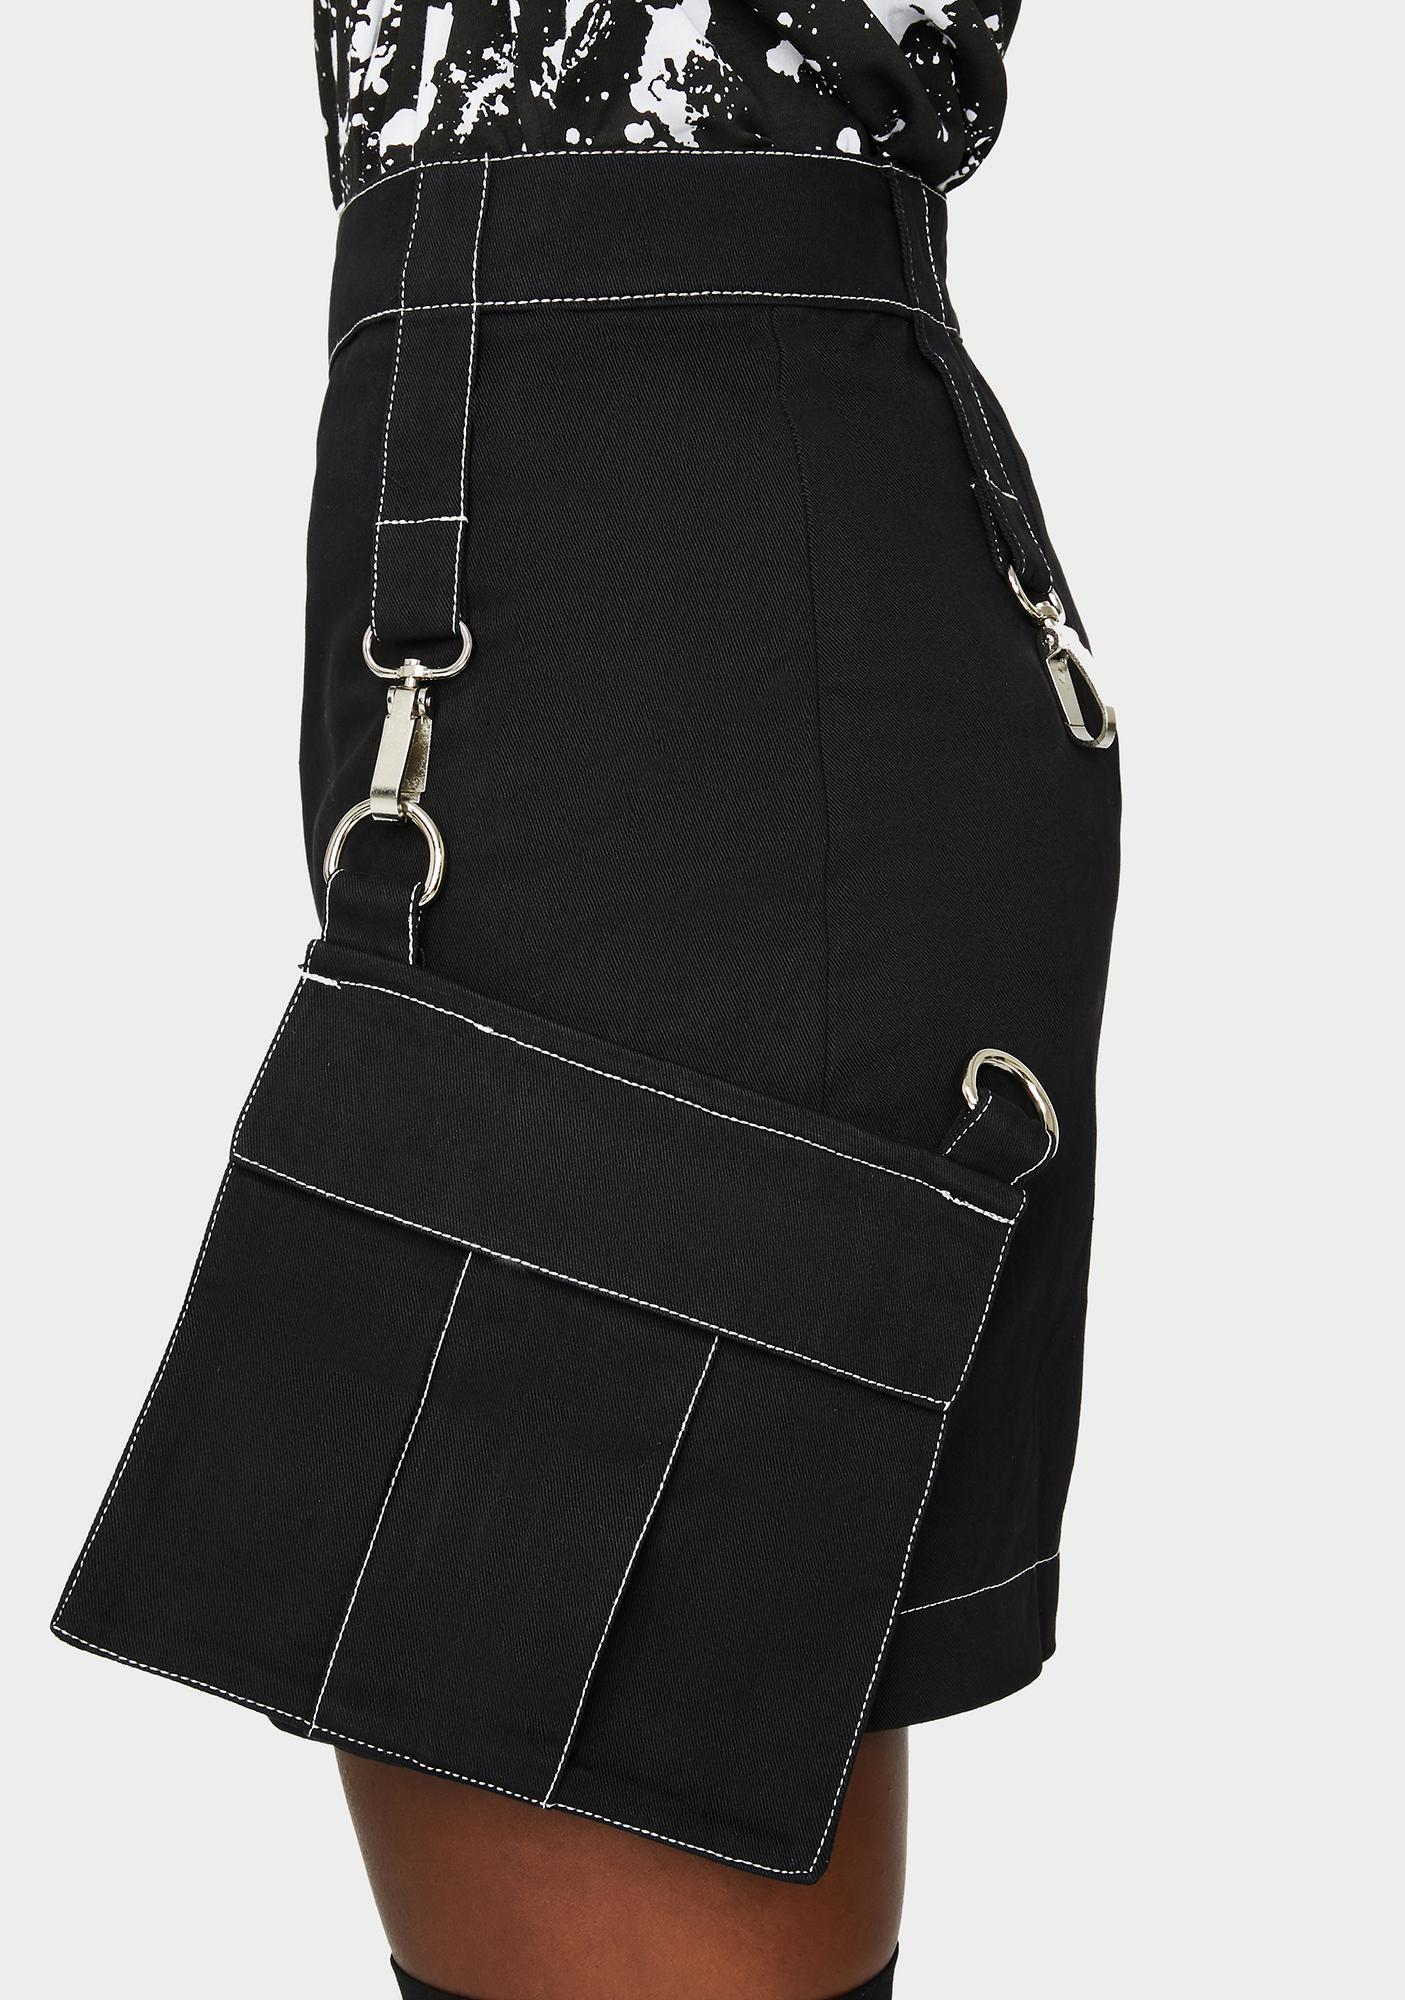 The Ragged Priest Command Cargo Mini Skirt